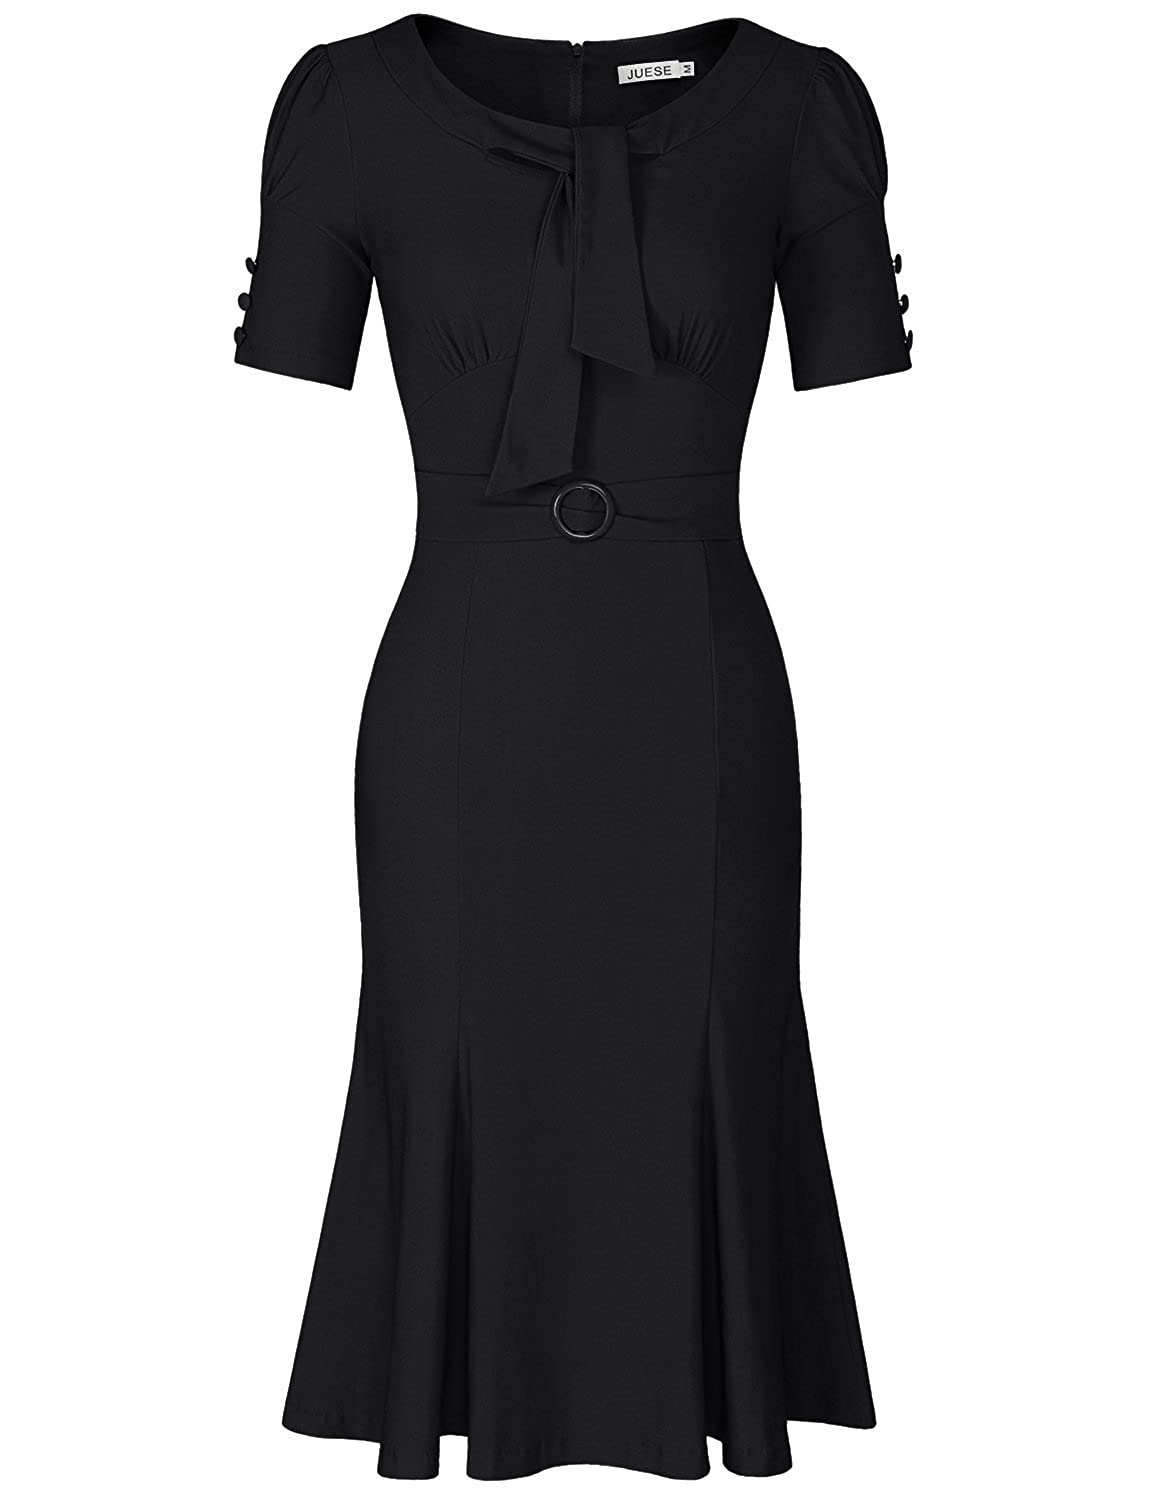 1940s Cocktail, Pin up and Bombshell Dresses Guide Formal or Casual Party Pencil Dress $32.99 AT vintagedancer.com